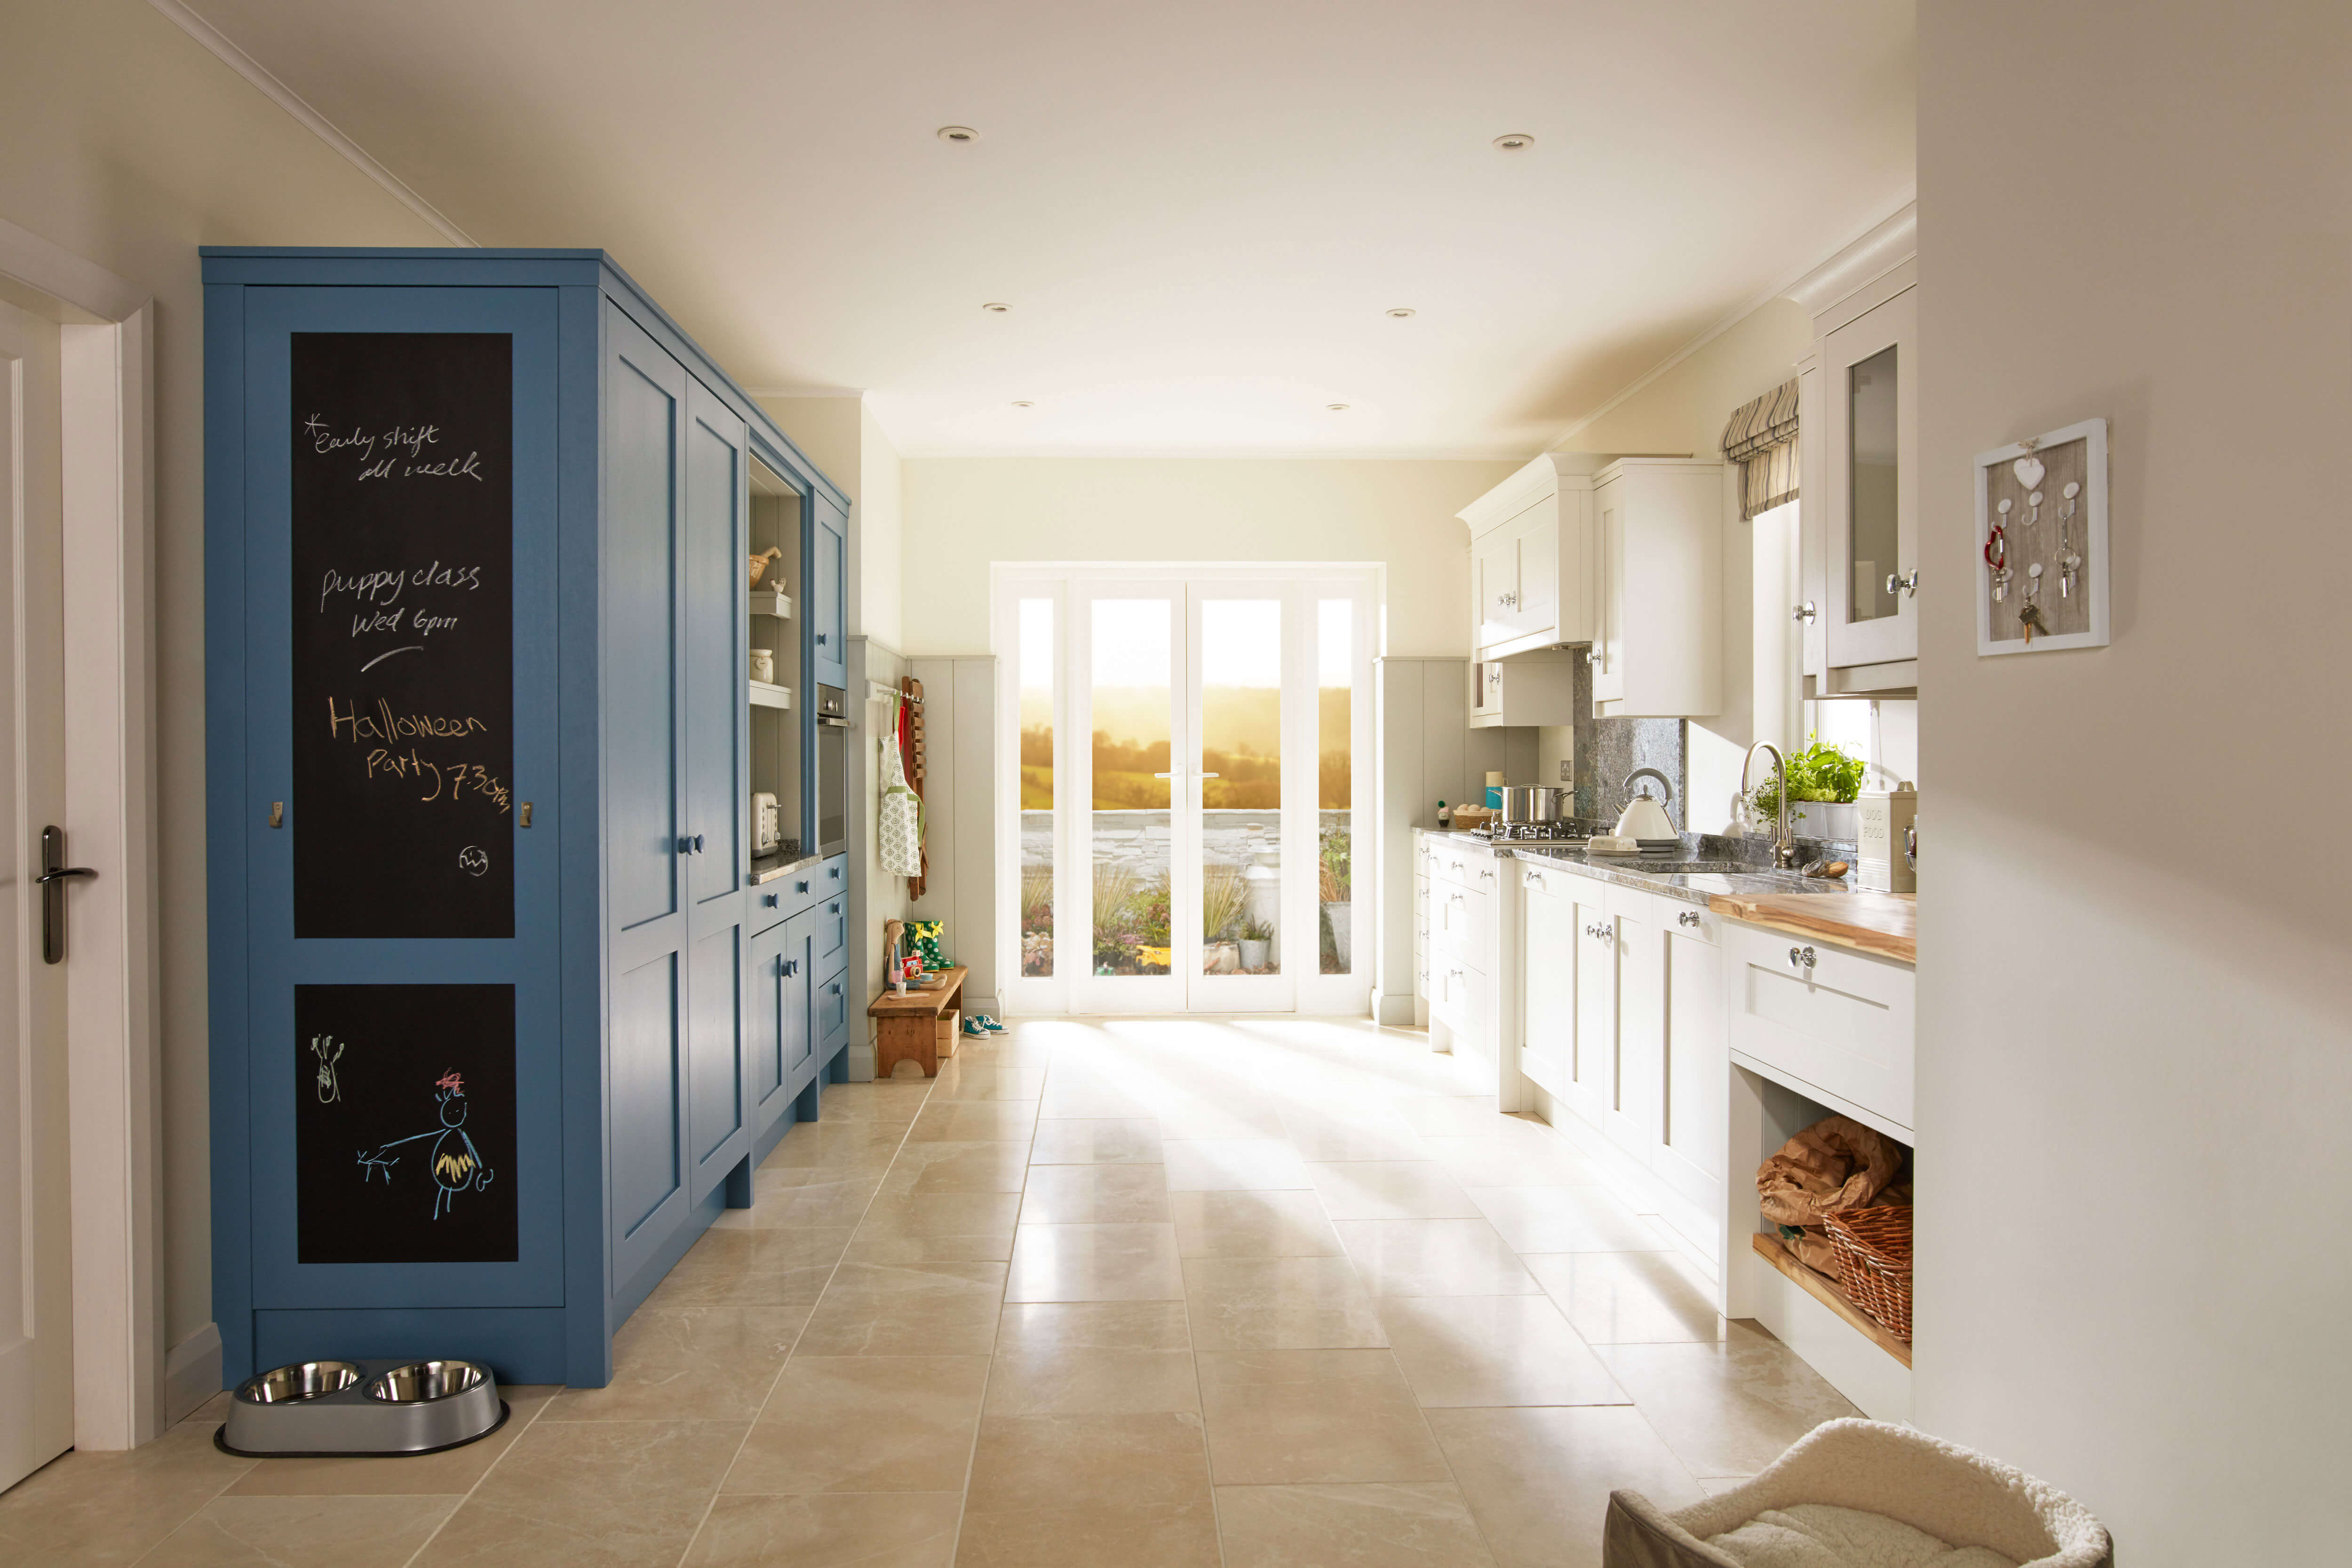 Alchemy-Kitchens-Milbourne-Gallery7